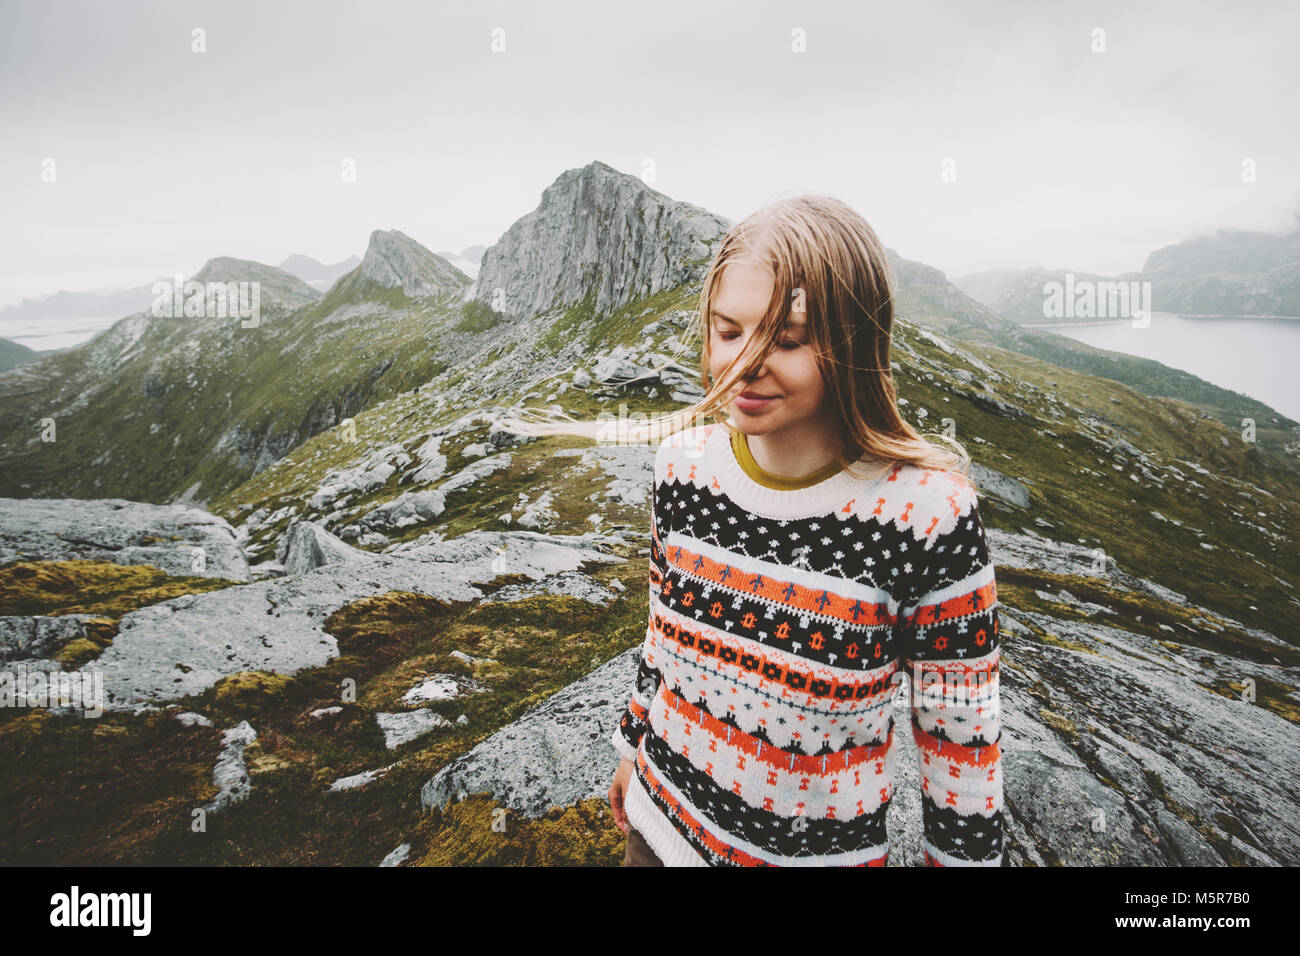 Young blonde woman walking in Norway mountains Travel lifestyle emotional concept adventure outdoor summer vacations - Stock Image